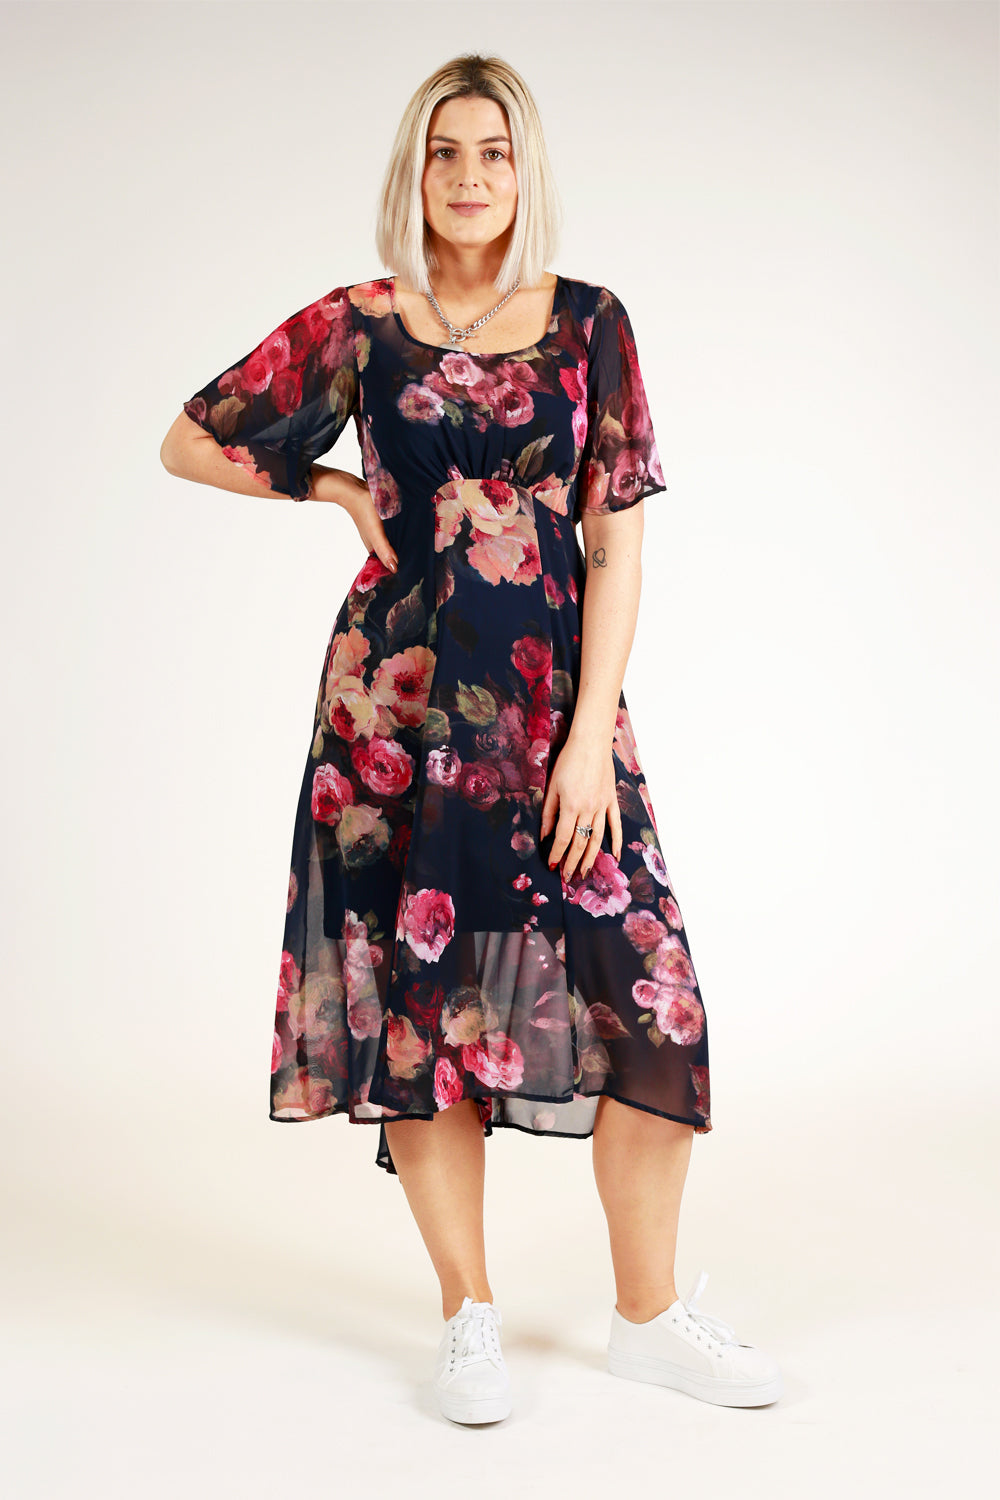 Down Town Dress - Navy Floral